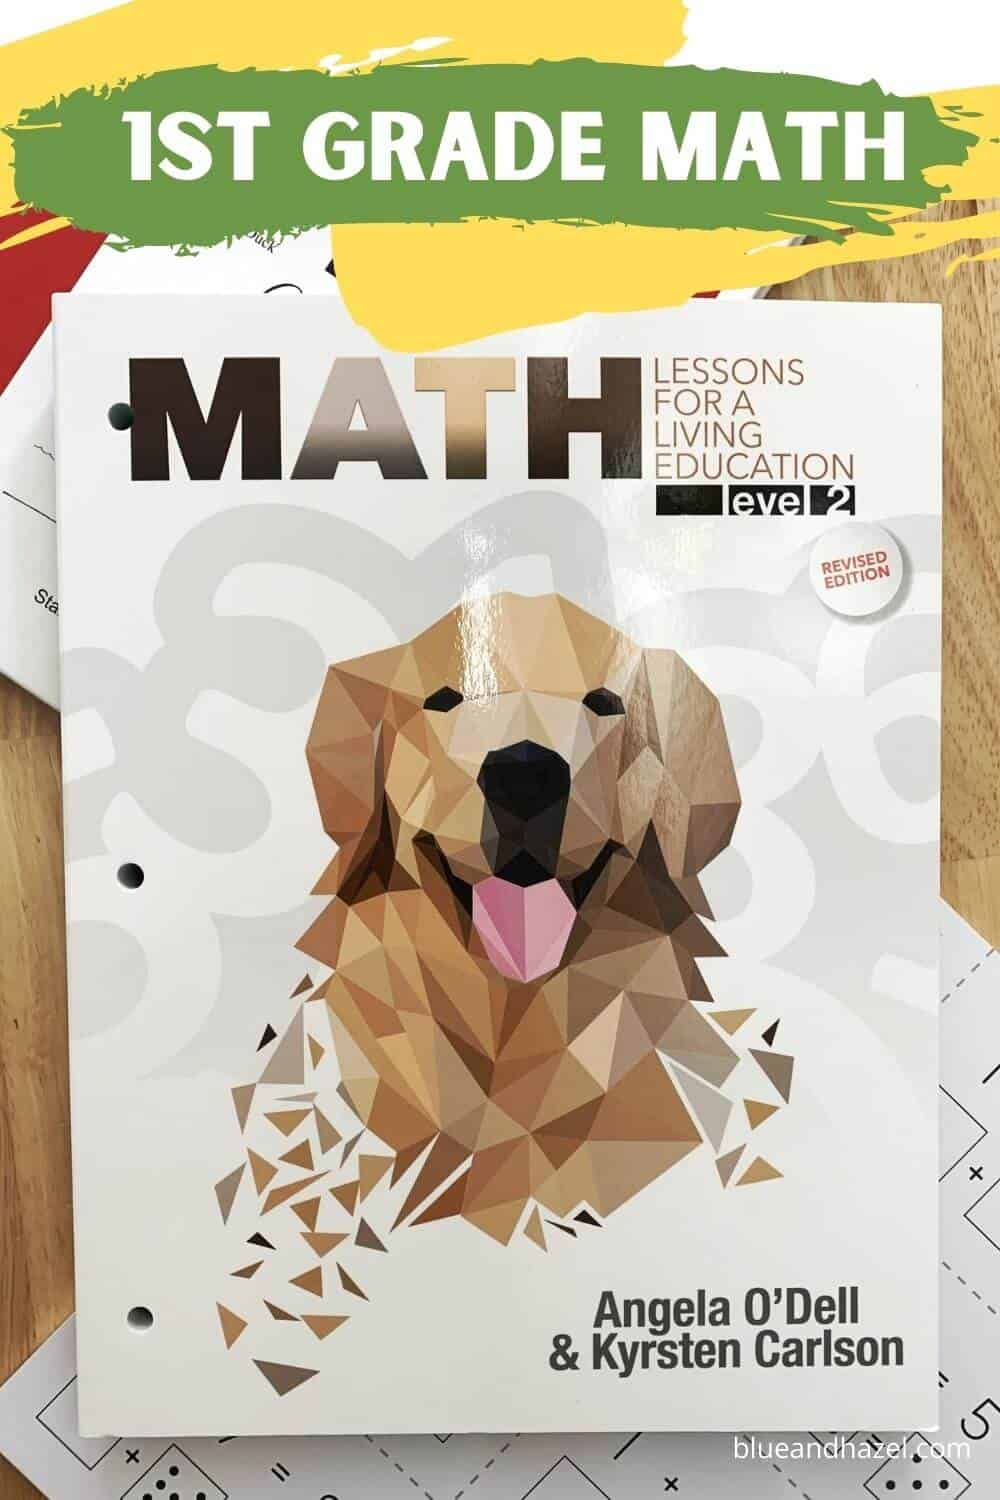 Our first grade homeschool curriculum masterbooks math lessons for a living education level 2